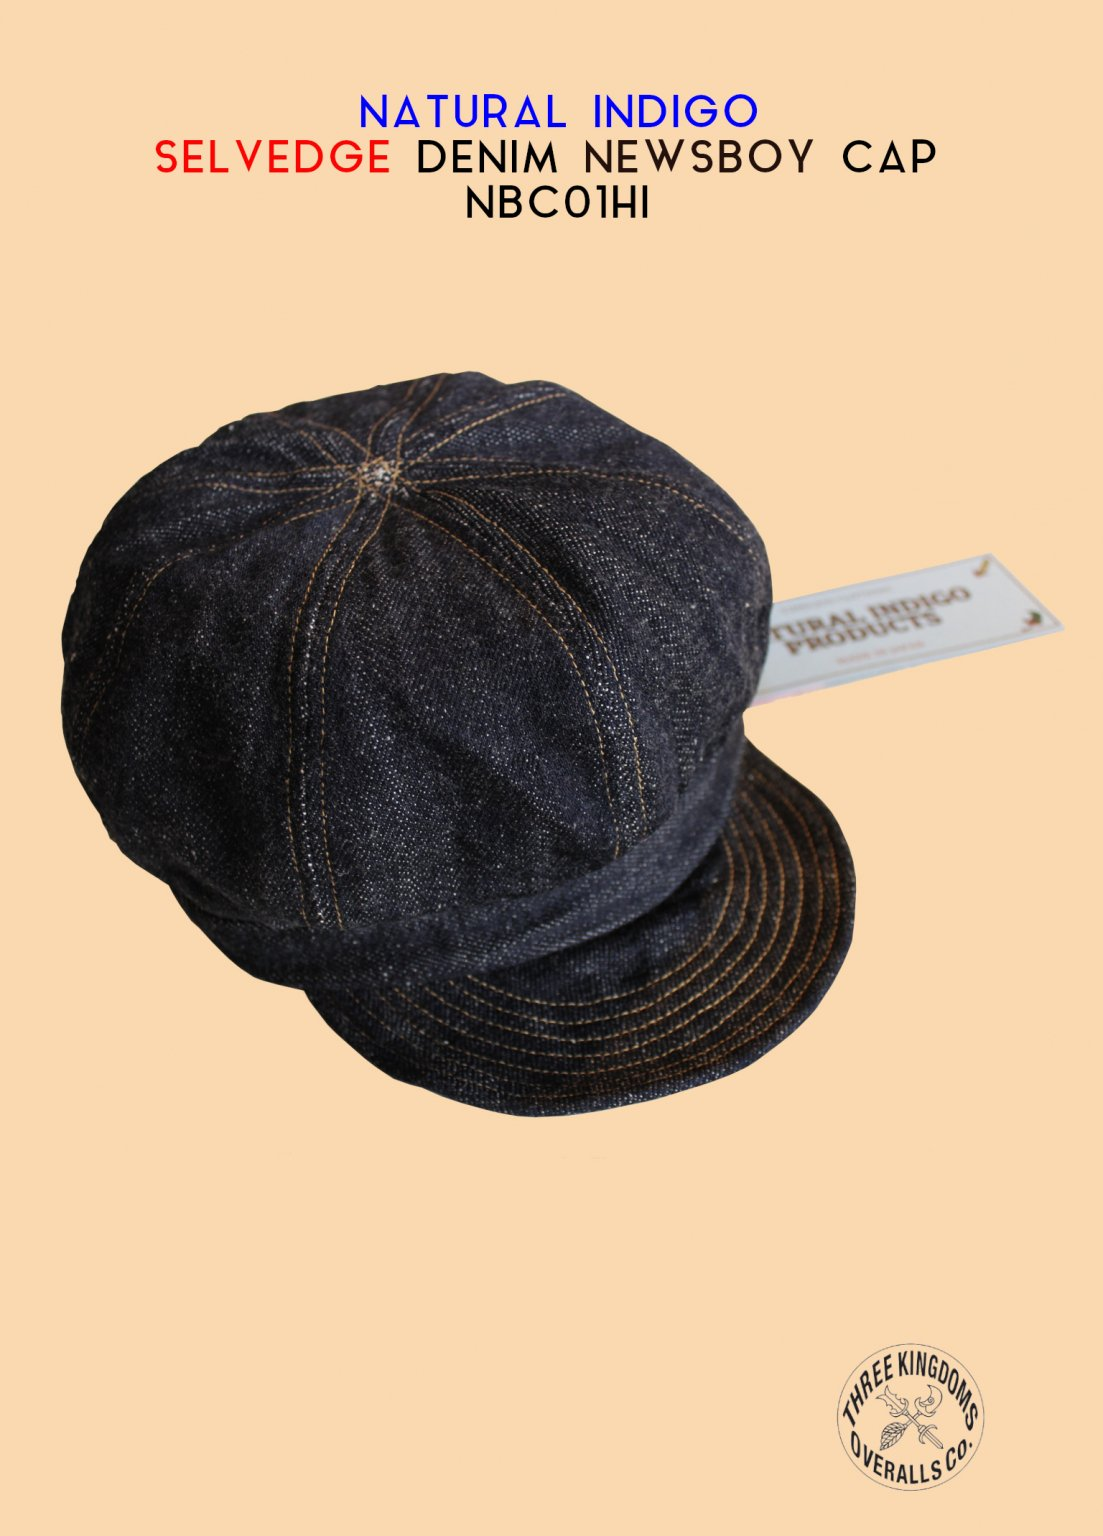 NBC01HI NEWSBOY CAP<img class='new_mark_img2' src='https://img.shop-pro.jp/img/new/icons14.gif' style='border:none;display:inline;margin:0px;padding:0px;width:auto;' />